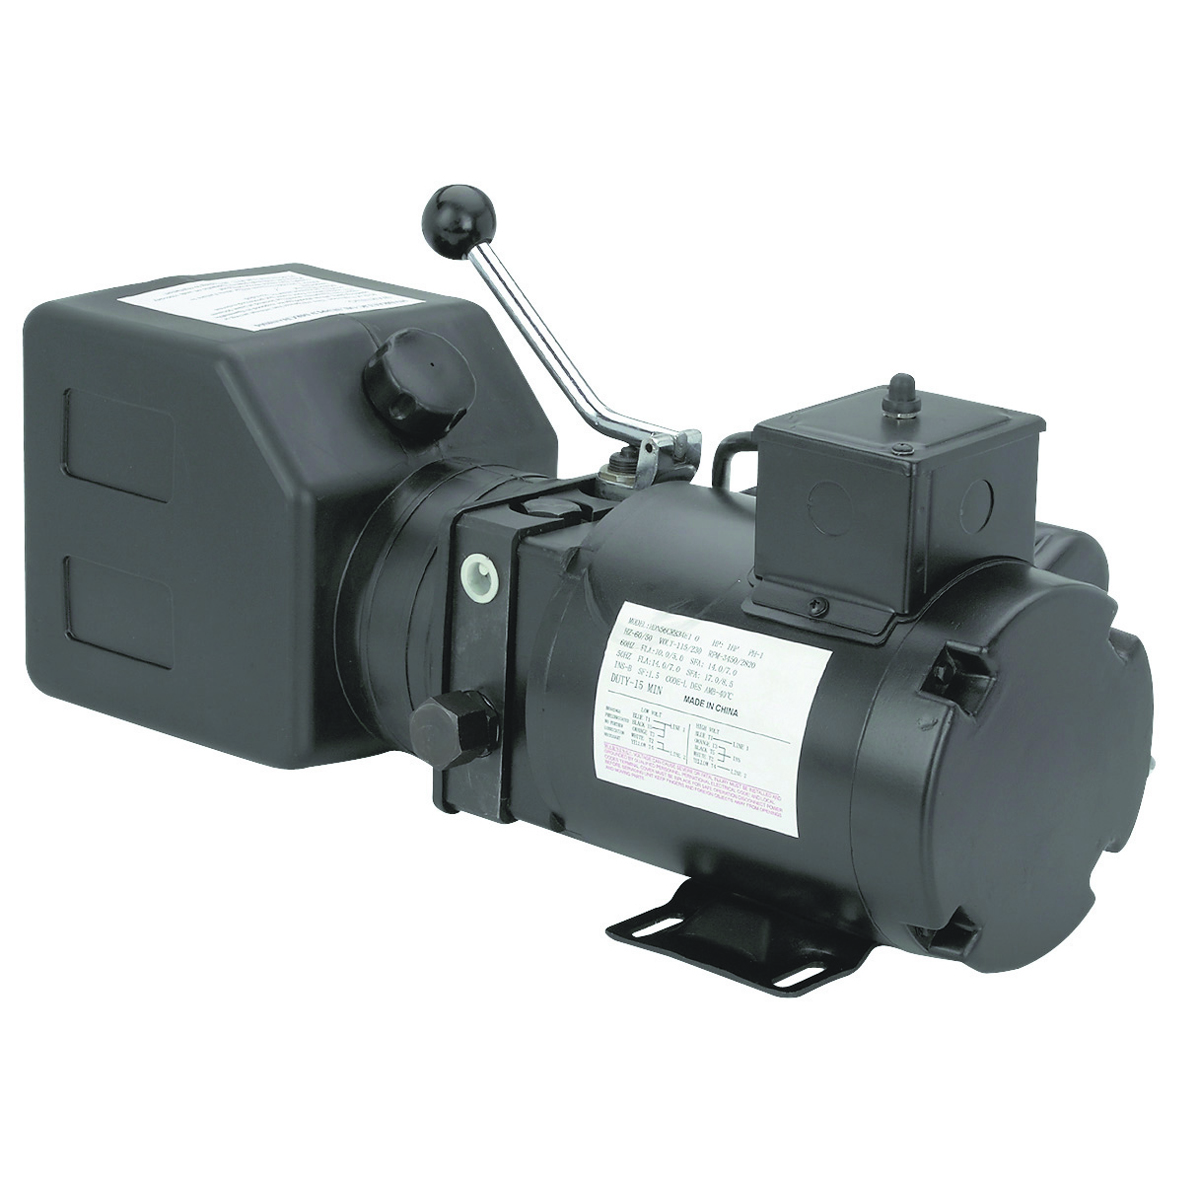 Electric hydraulic pump save on this 1 hp hydraulic pump for Hydraulic pumps and motors for sale